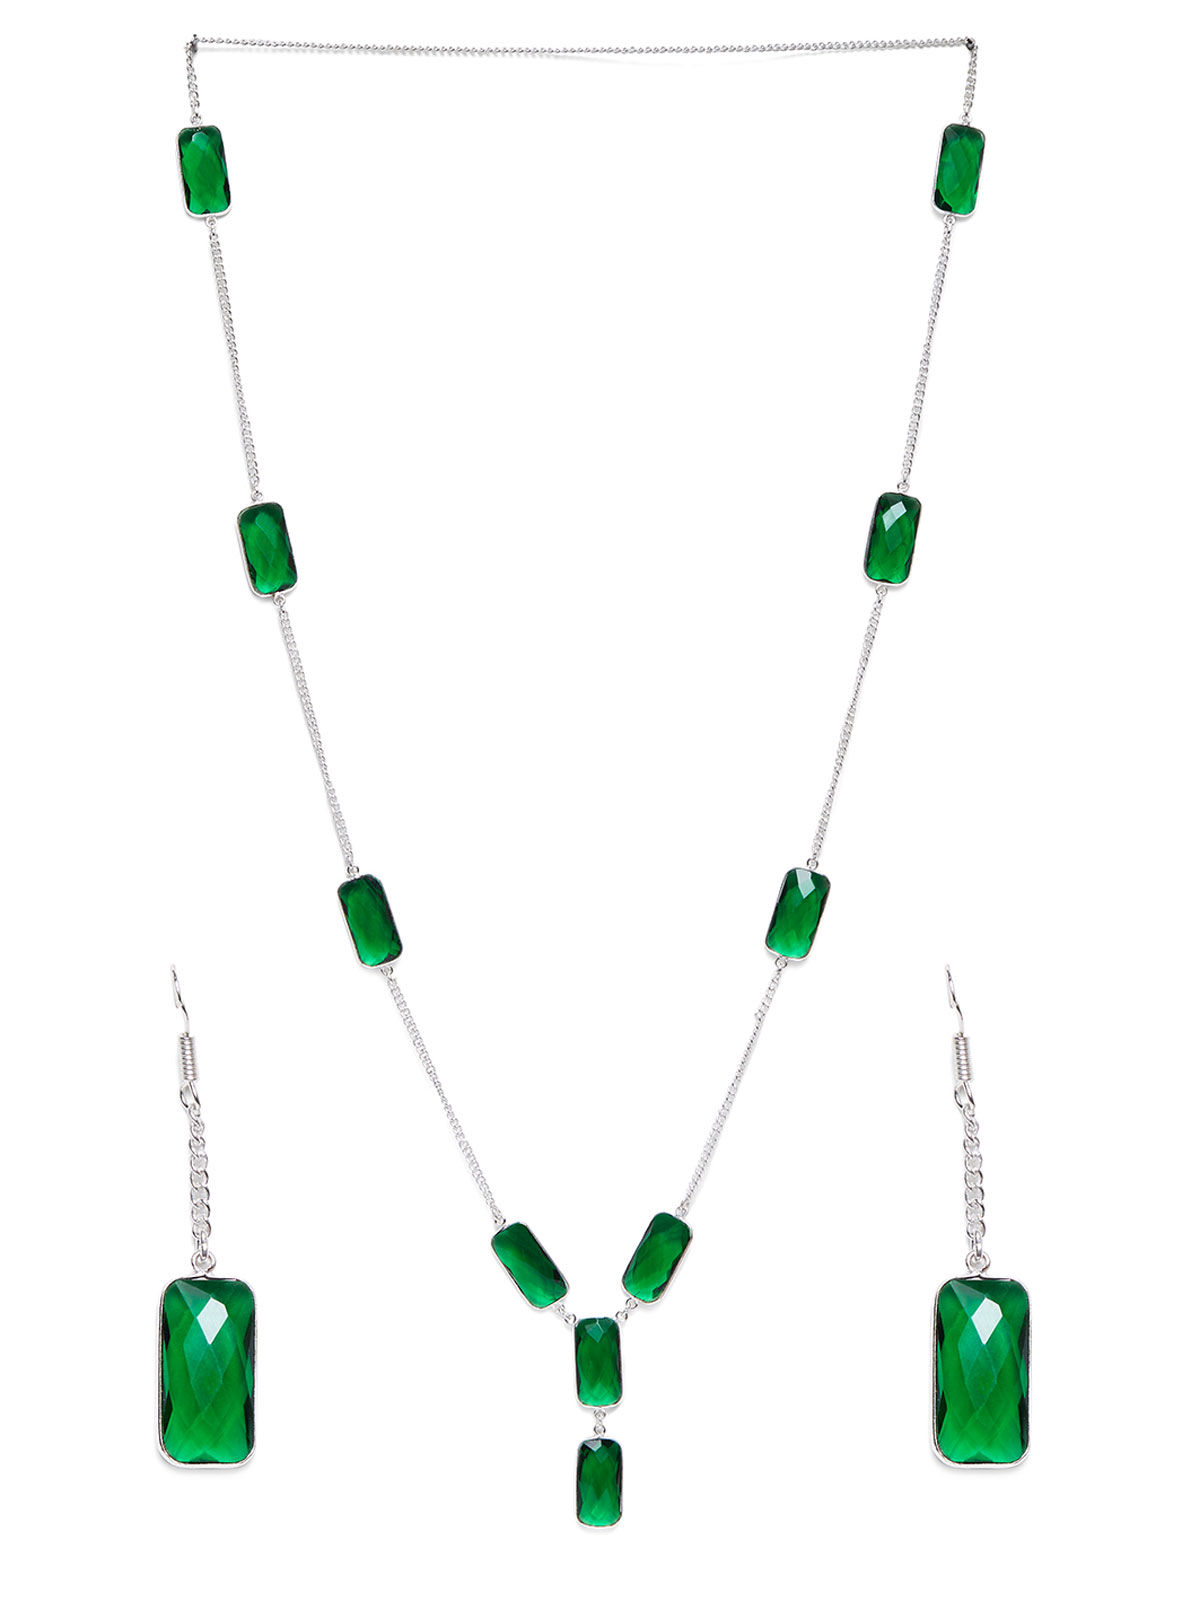 Imli Street green silver tone brass neckpiece and earrings set